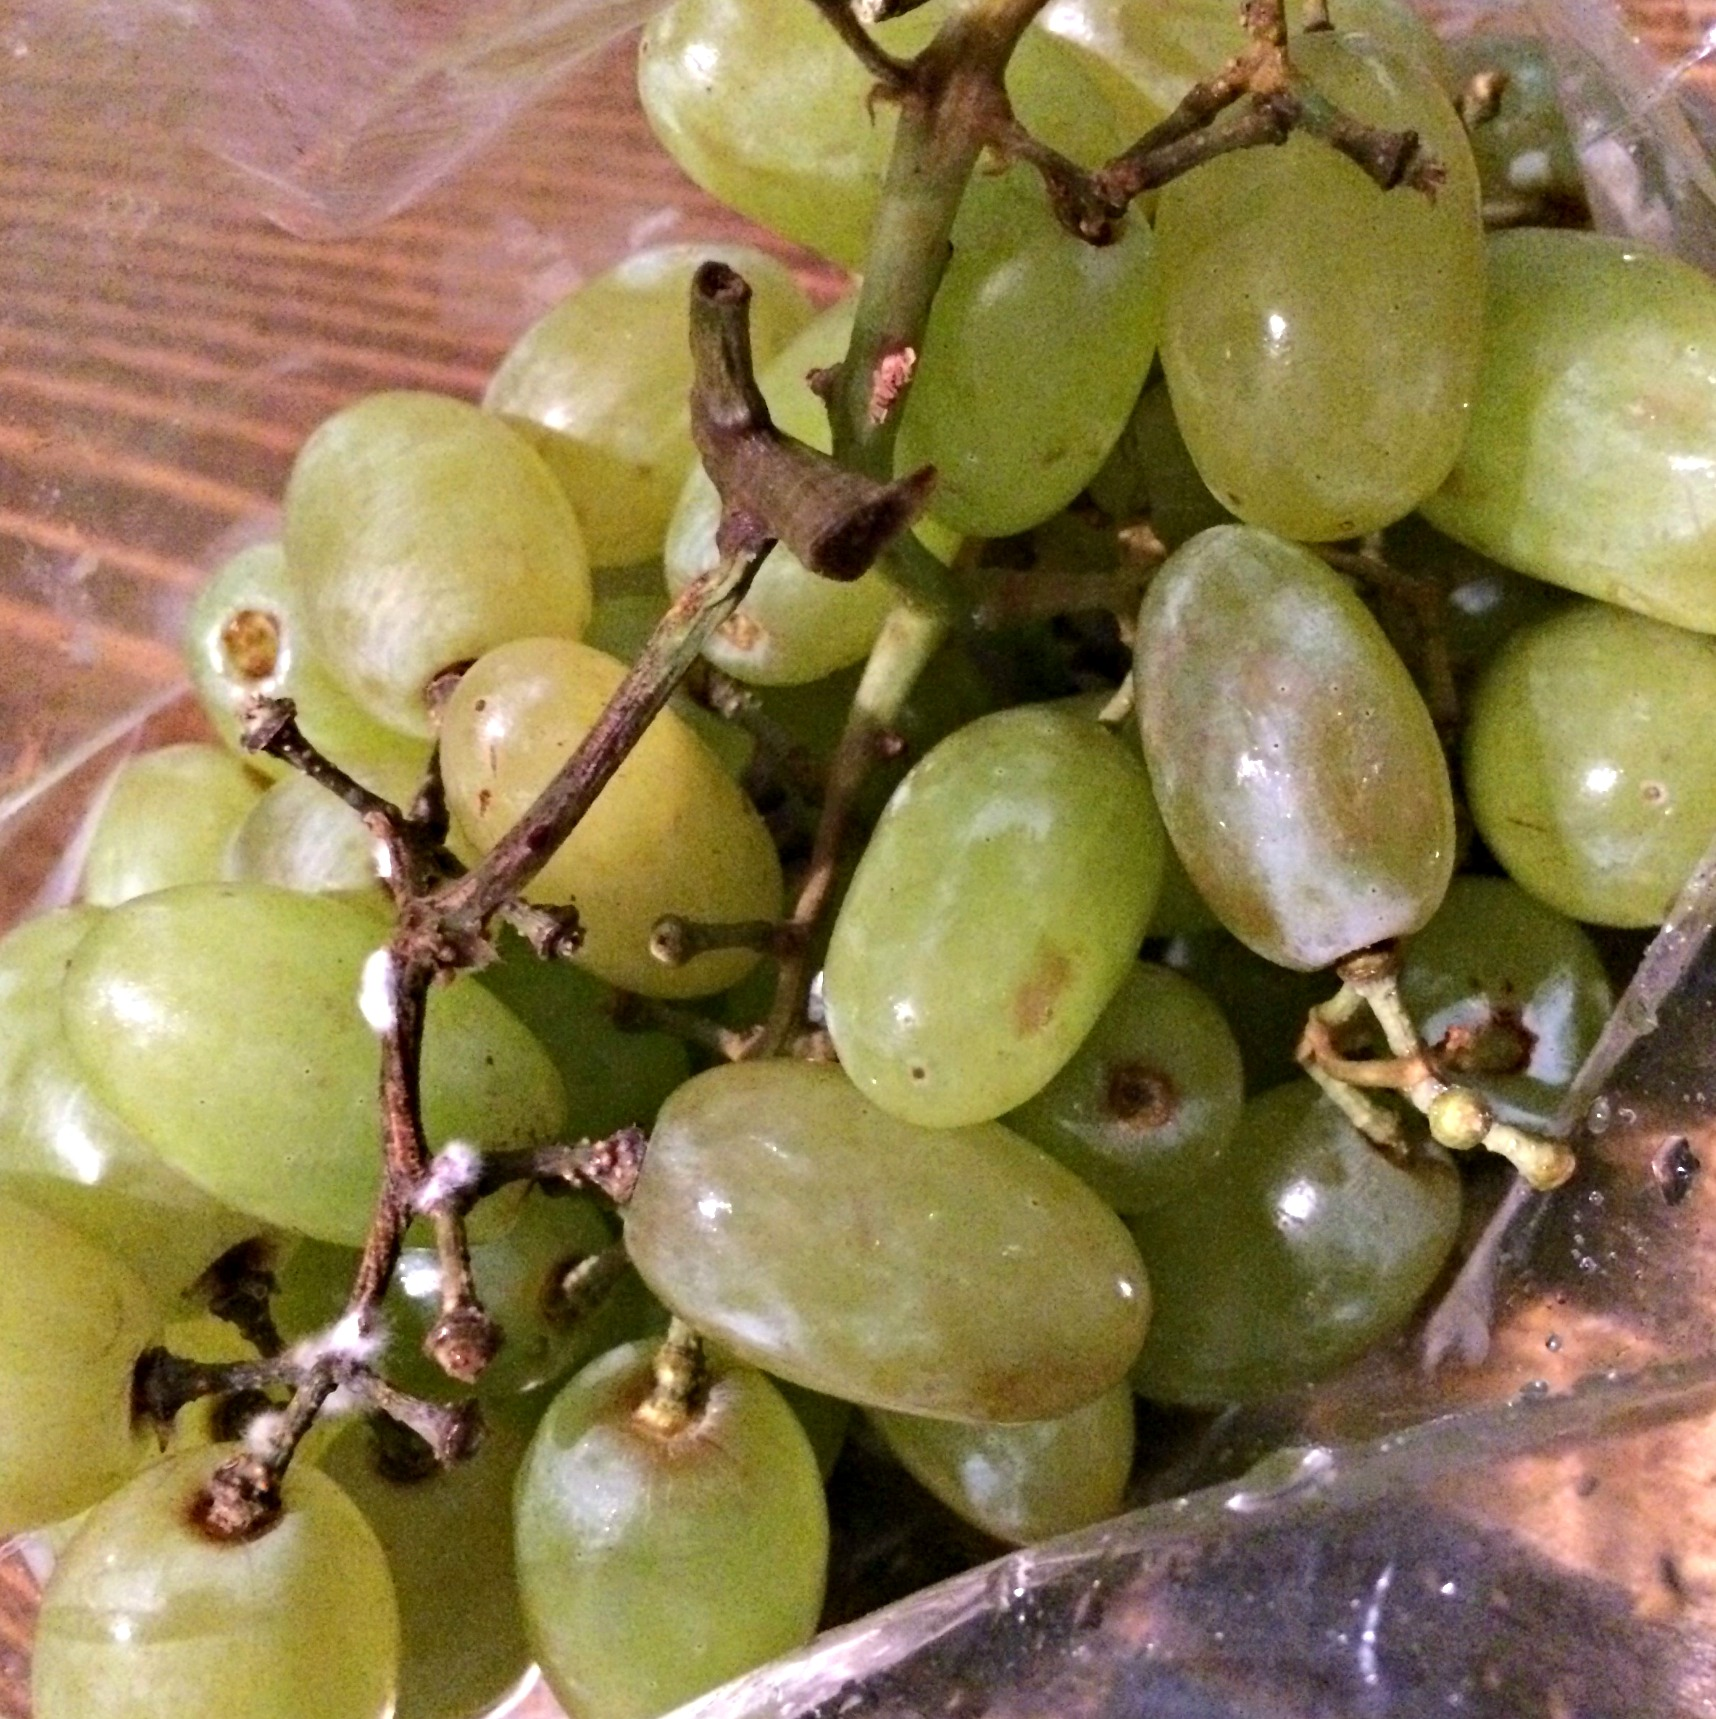 green grapes for a snack